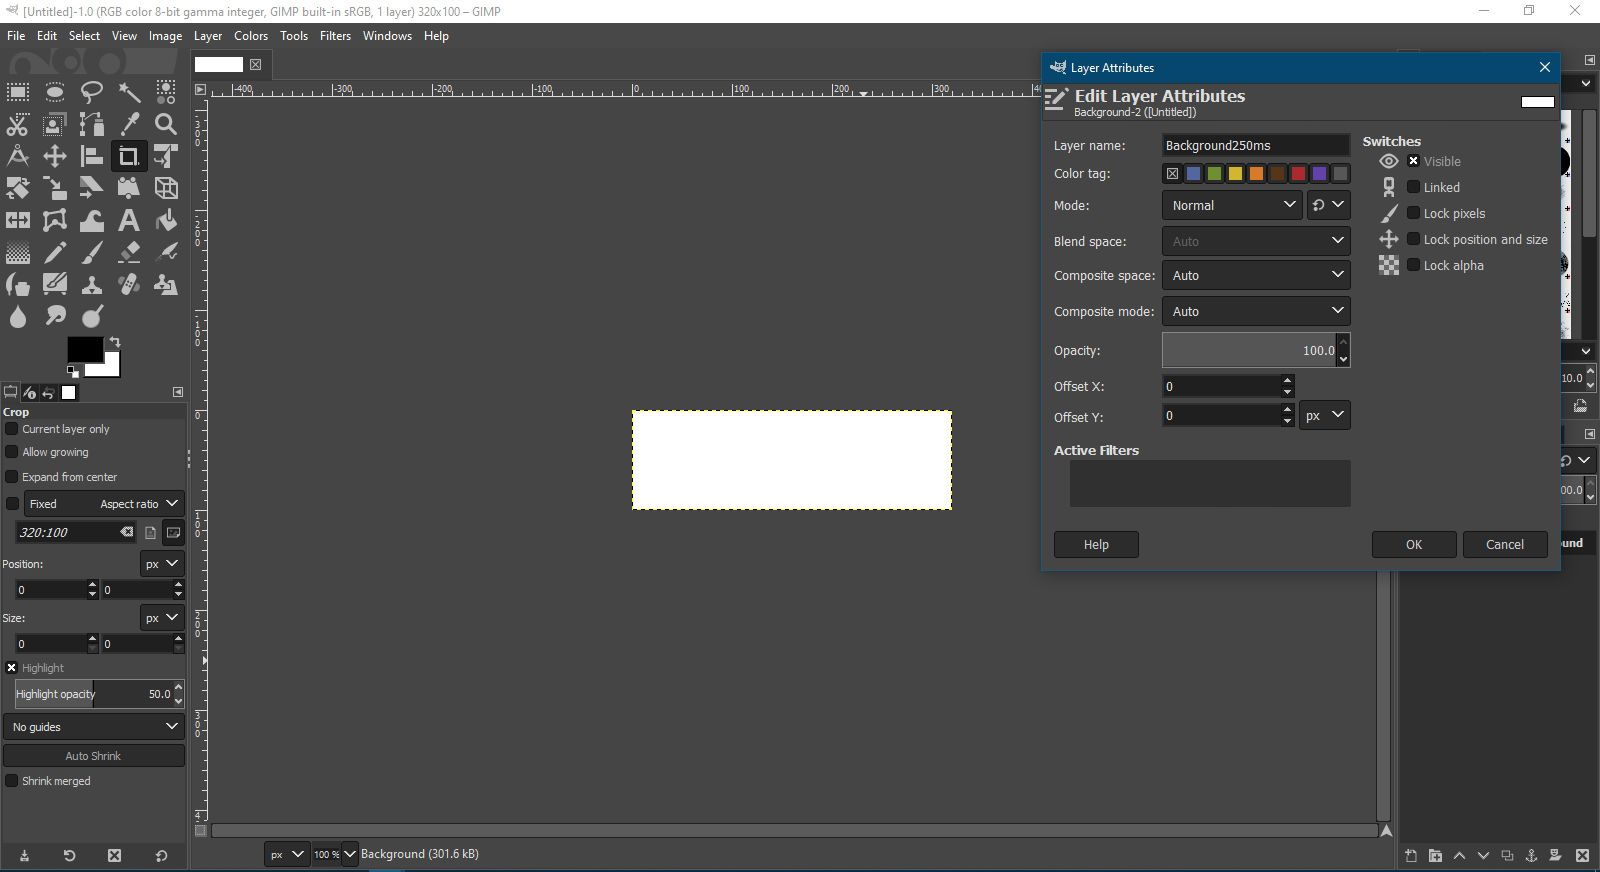 Producing an Animated GIF With GIMP